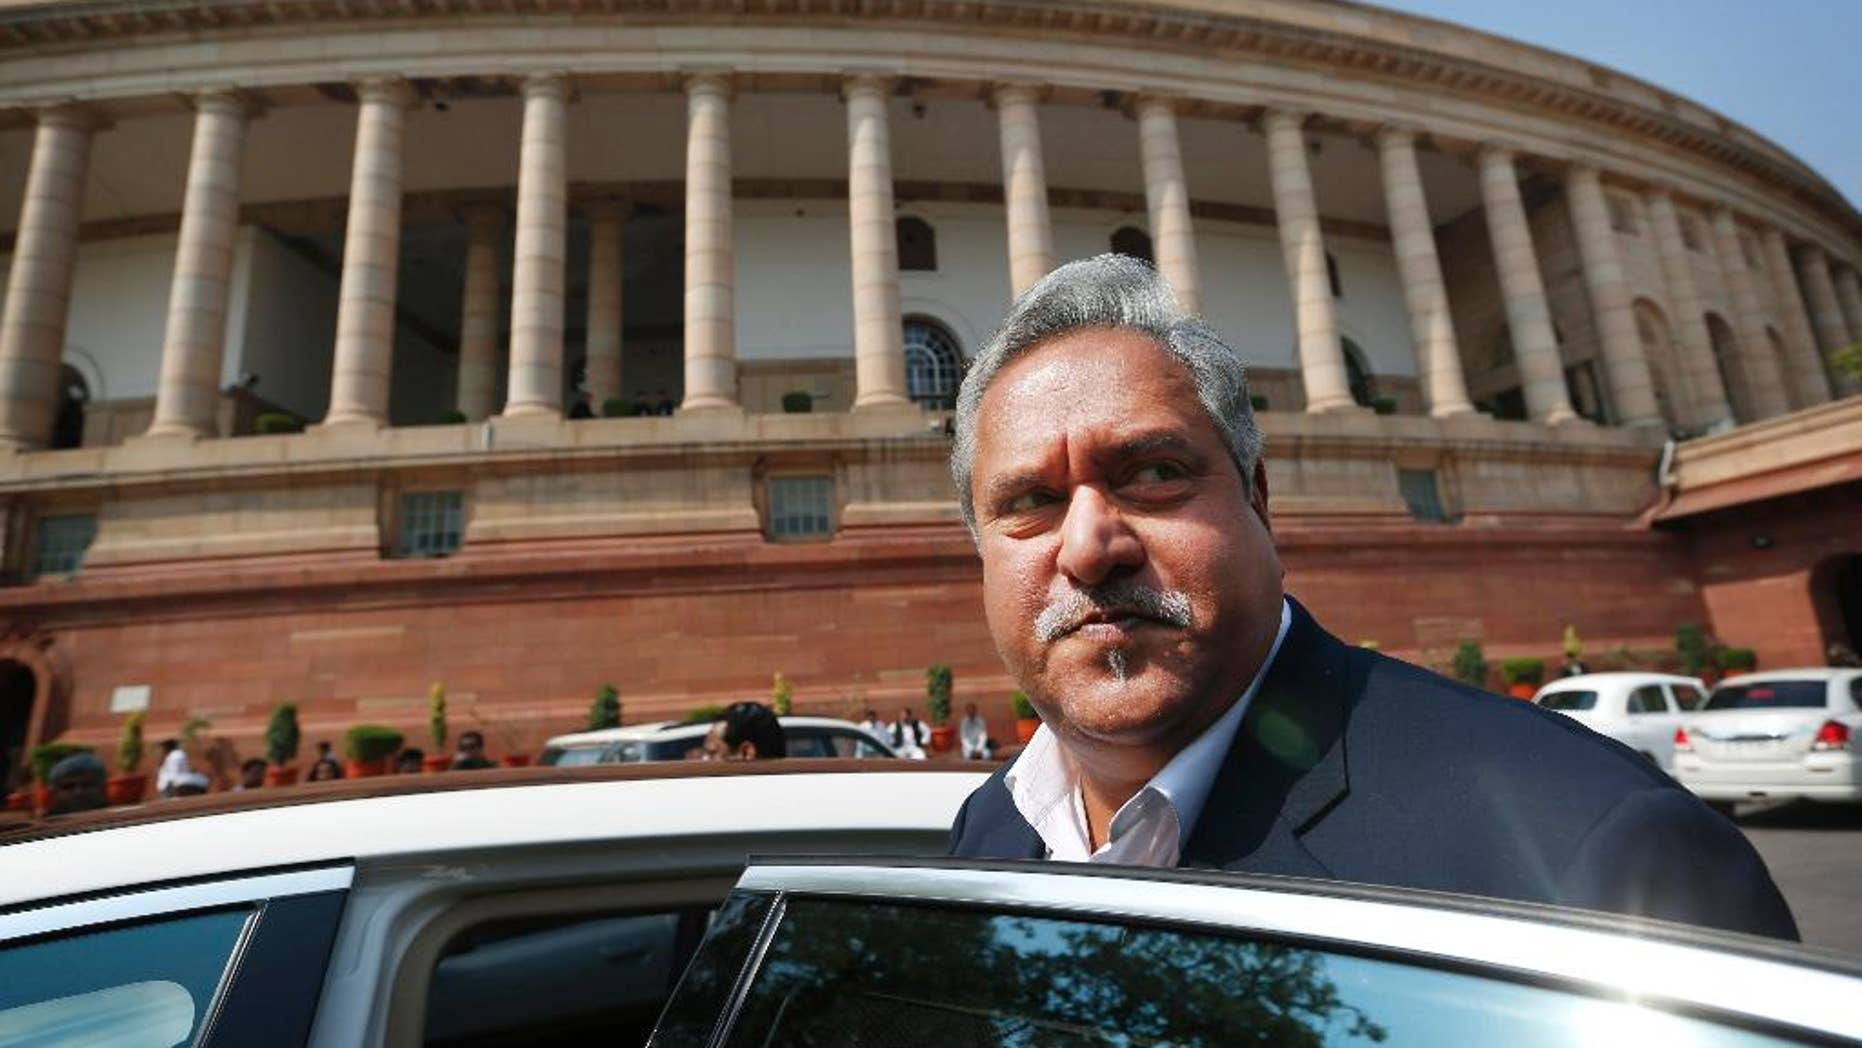 FILE- In this Feb. 27, 2013 file photo, Indian business tycoon and owner of Kingfisher Airlines Vijay Mallya gets into his car outside the Parliament in New Delhi, India. India will ask Britain to extradite Mallya to face charges of money laundering and bank demands that he pay back more than a billion dollars in loans extended to his now-defunct airline, the finance minister Arun Jaitley said Wednesday. (AP Photo/Saurabh Das, File)